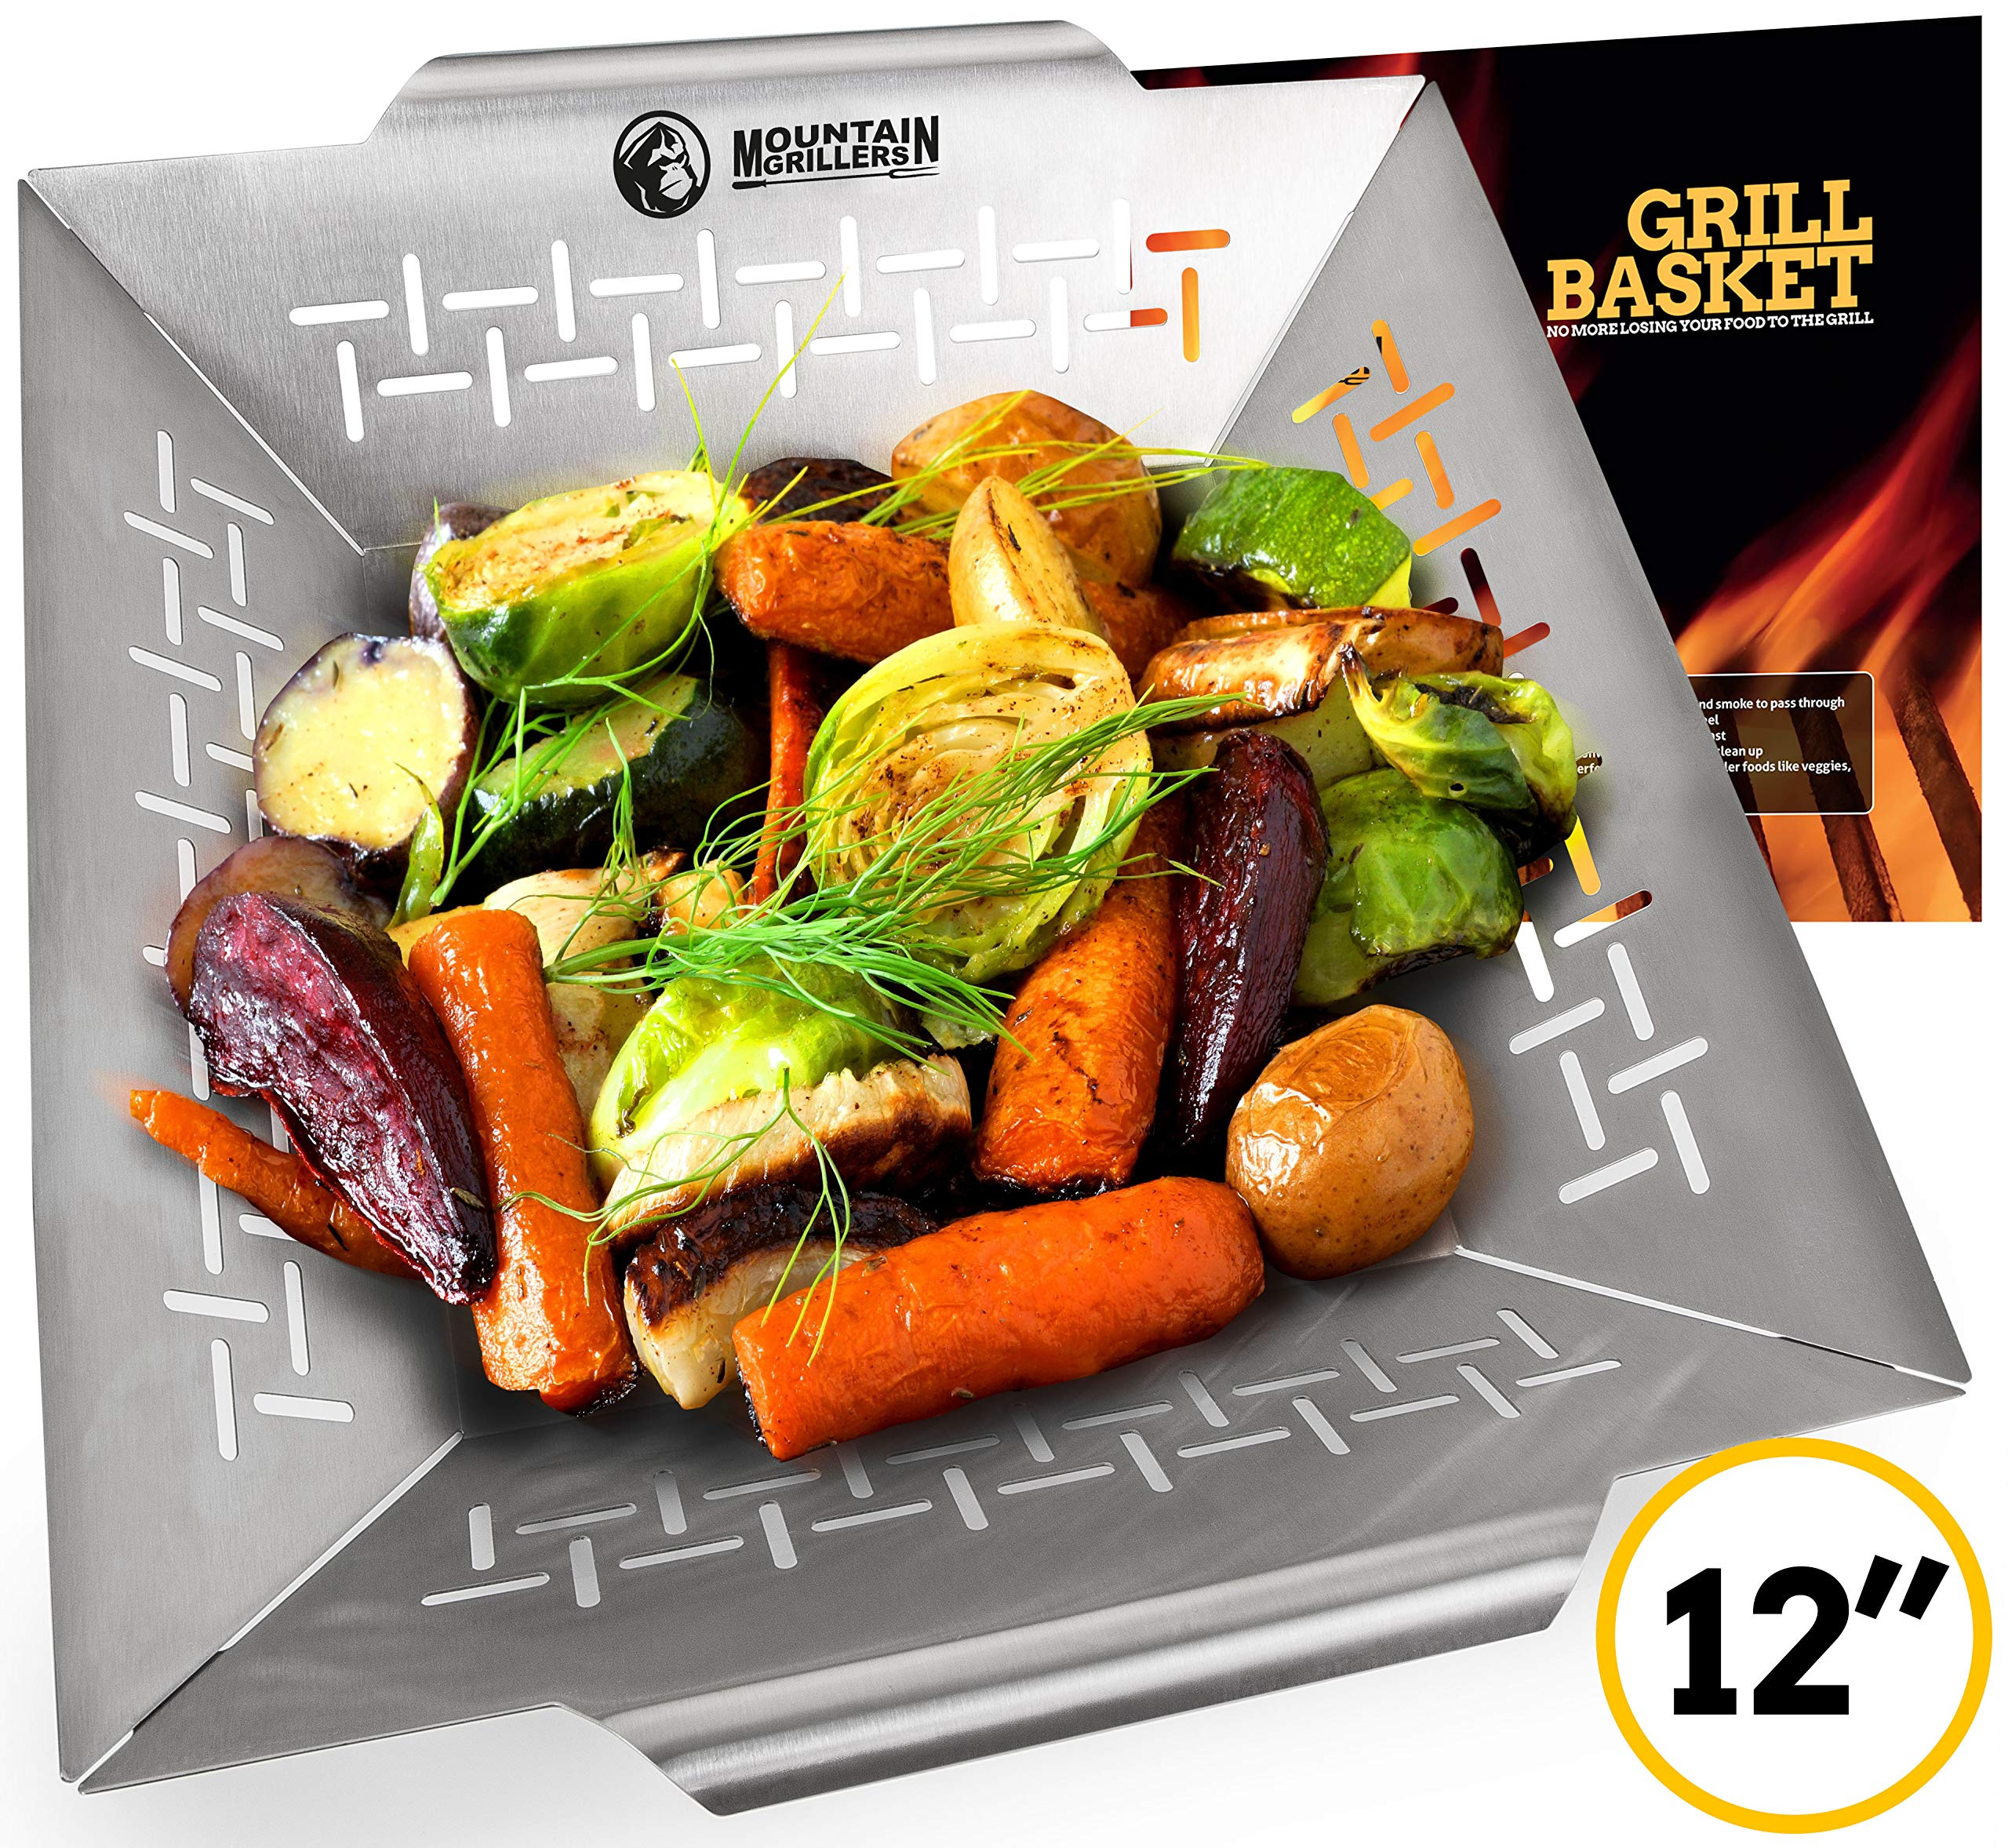 Vegetable Grill Basket - Grilling Basket for Vegetable Meat and Shrimp - Suitable for All Grills BBQ & Smokers - Stainless Steel by Mountain Grillers